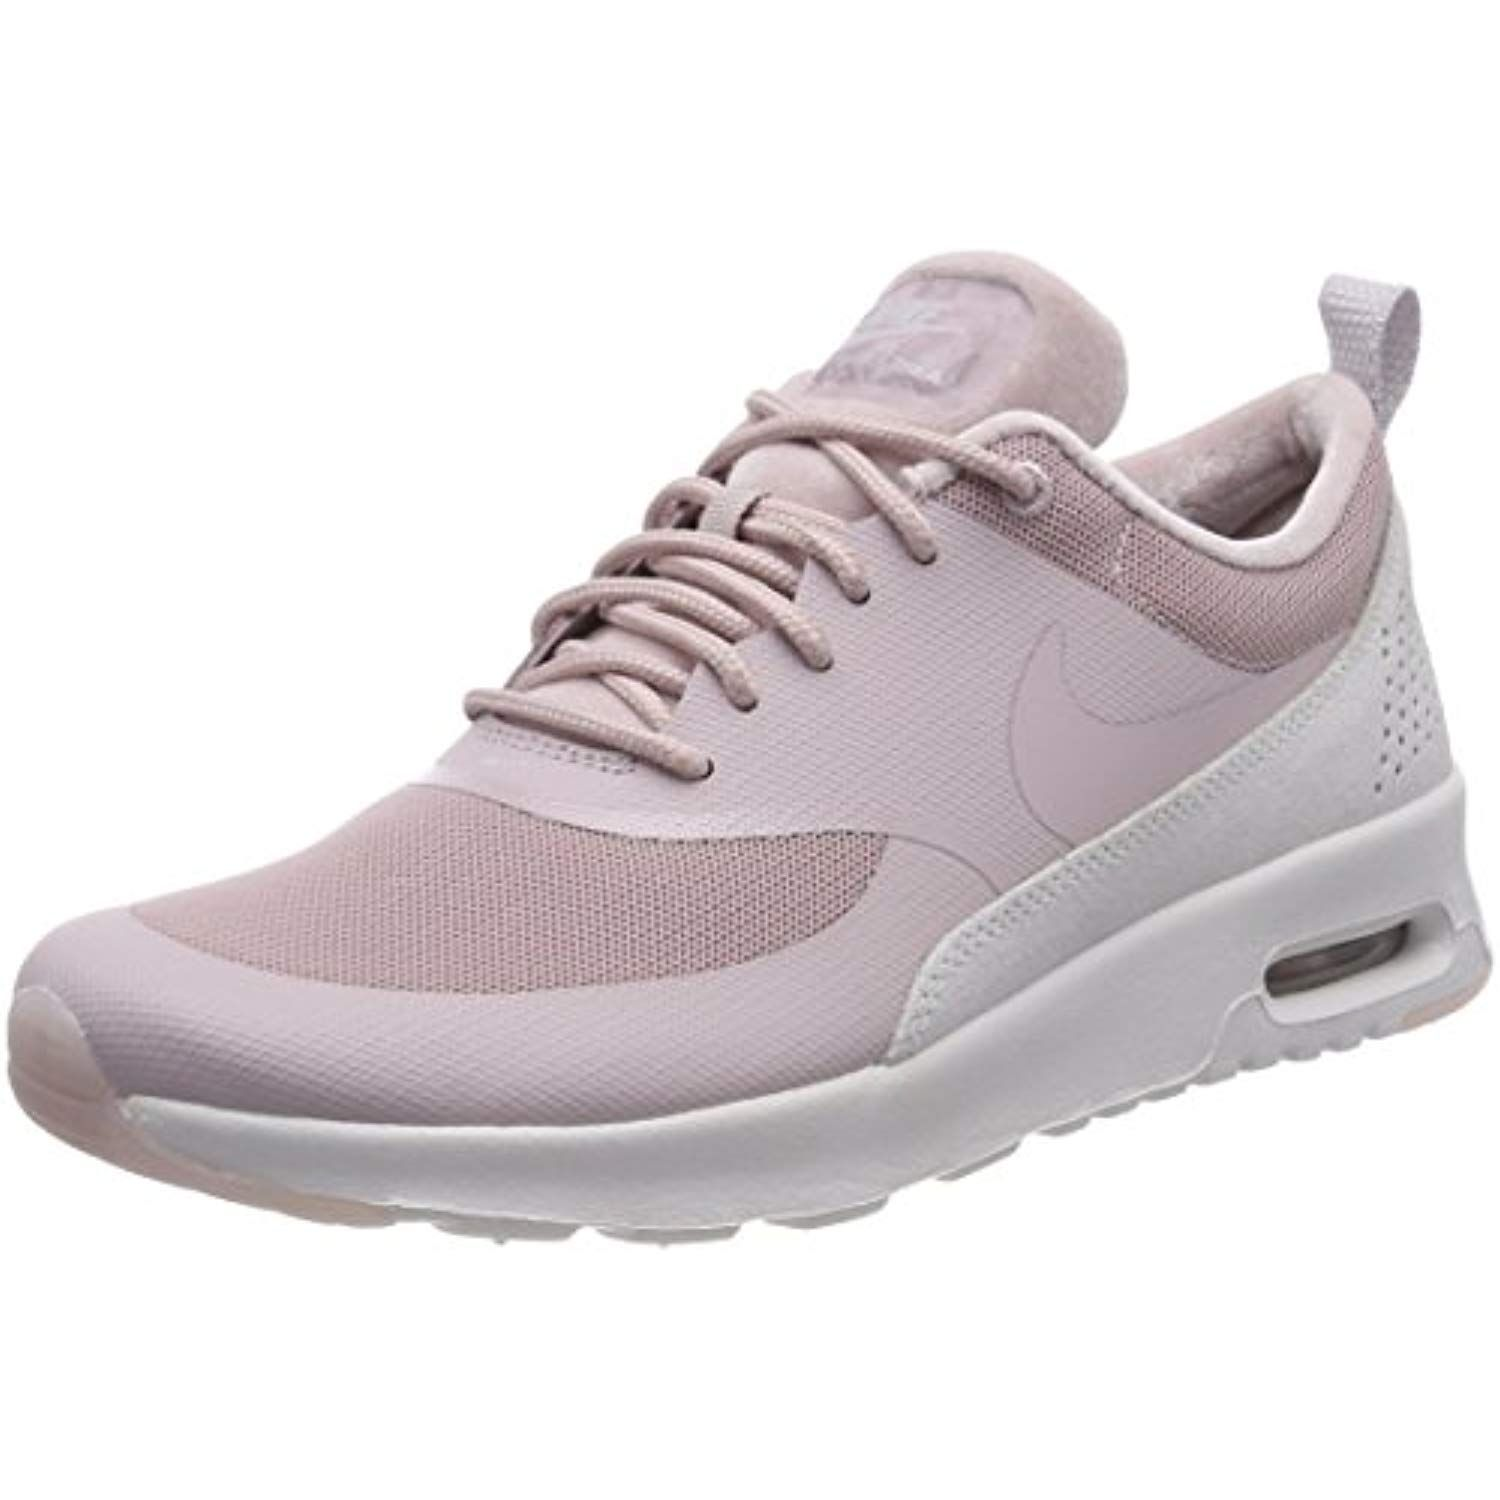 NIKE Women's WMNS Air Max Thea Lx Gymnastics Shoes